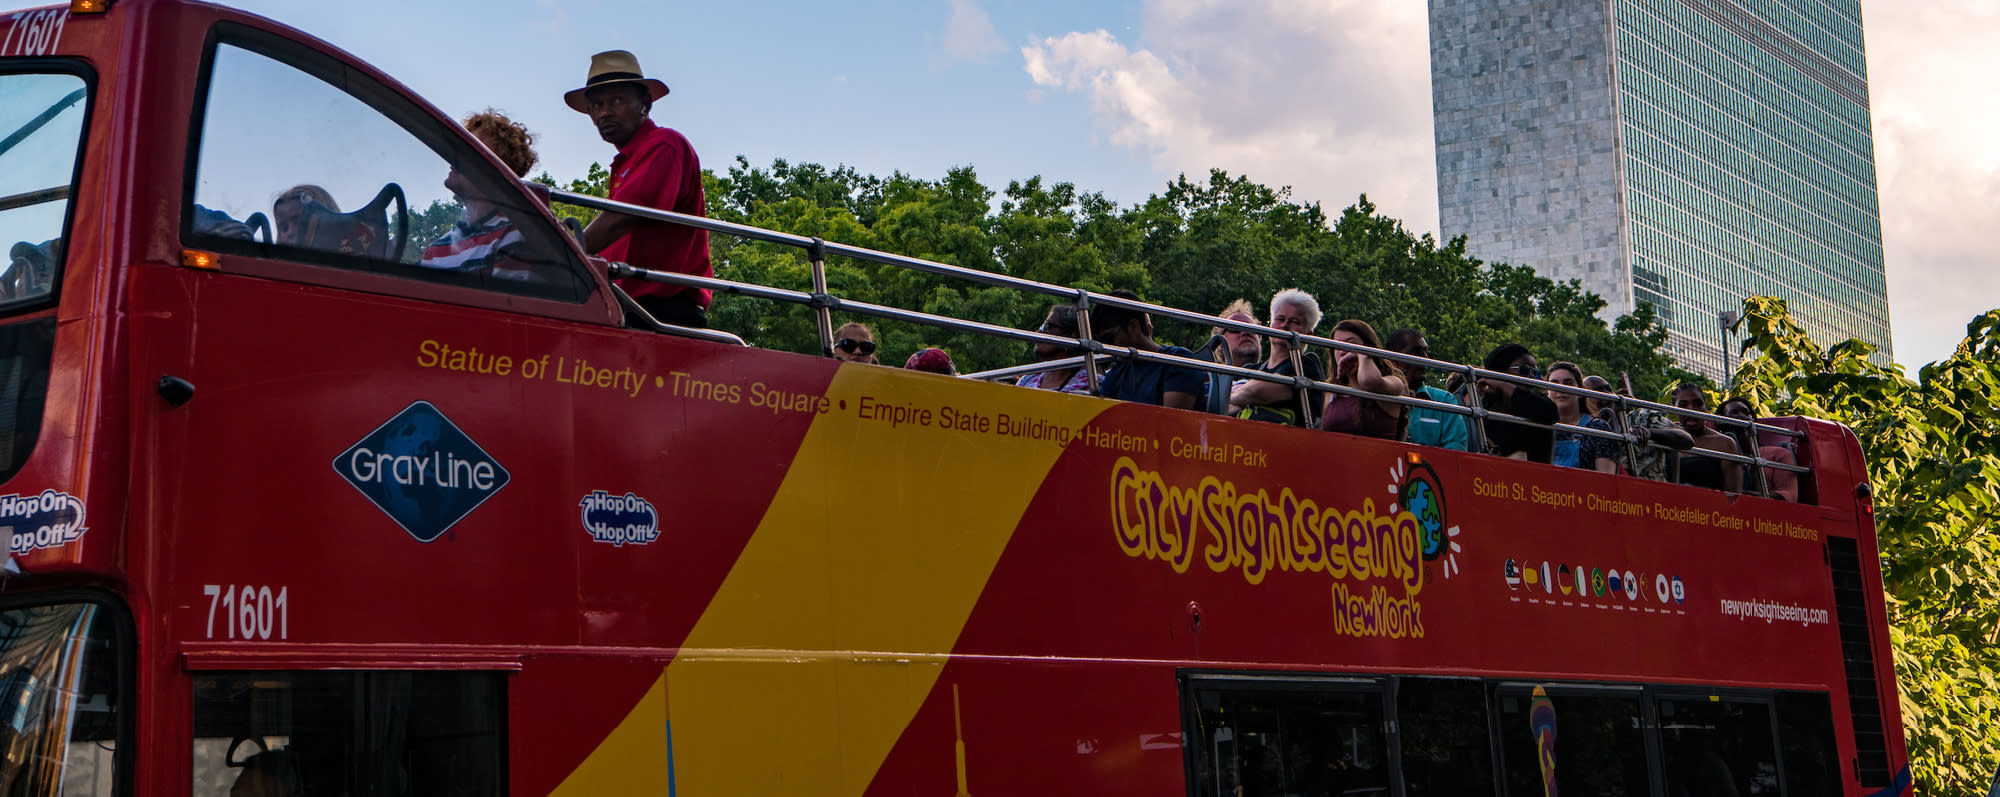 A picture of people on the top of a double-decker bus on the Grey Line Sightseeing Tour NYC